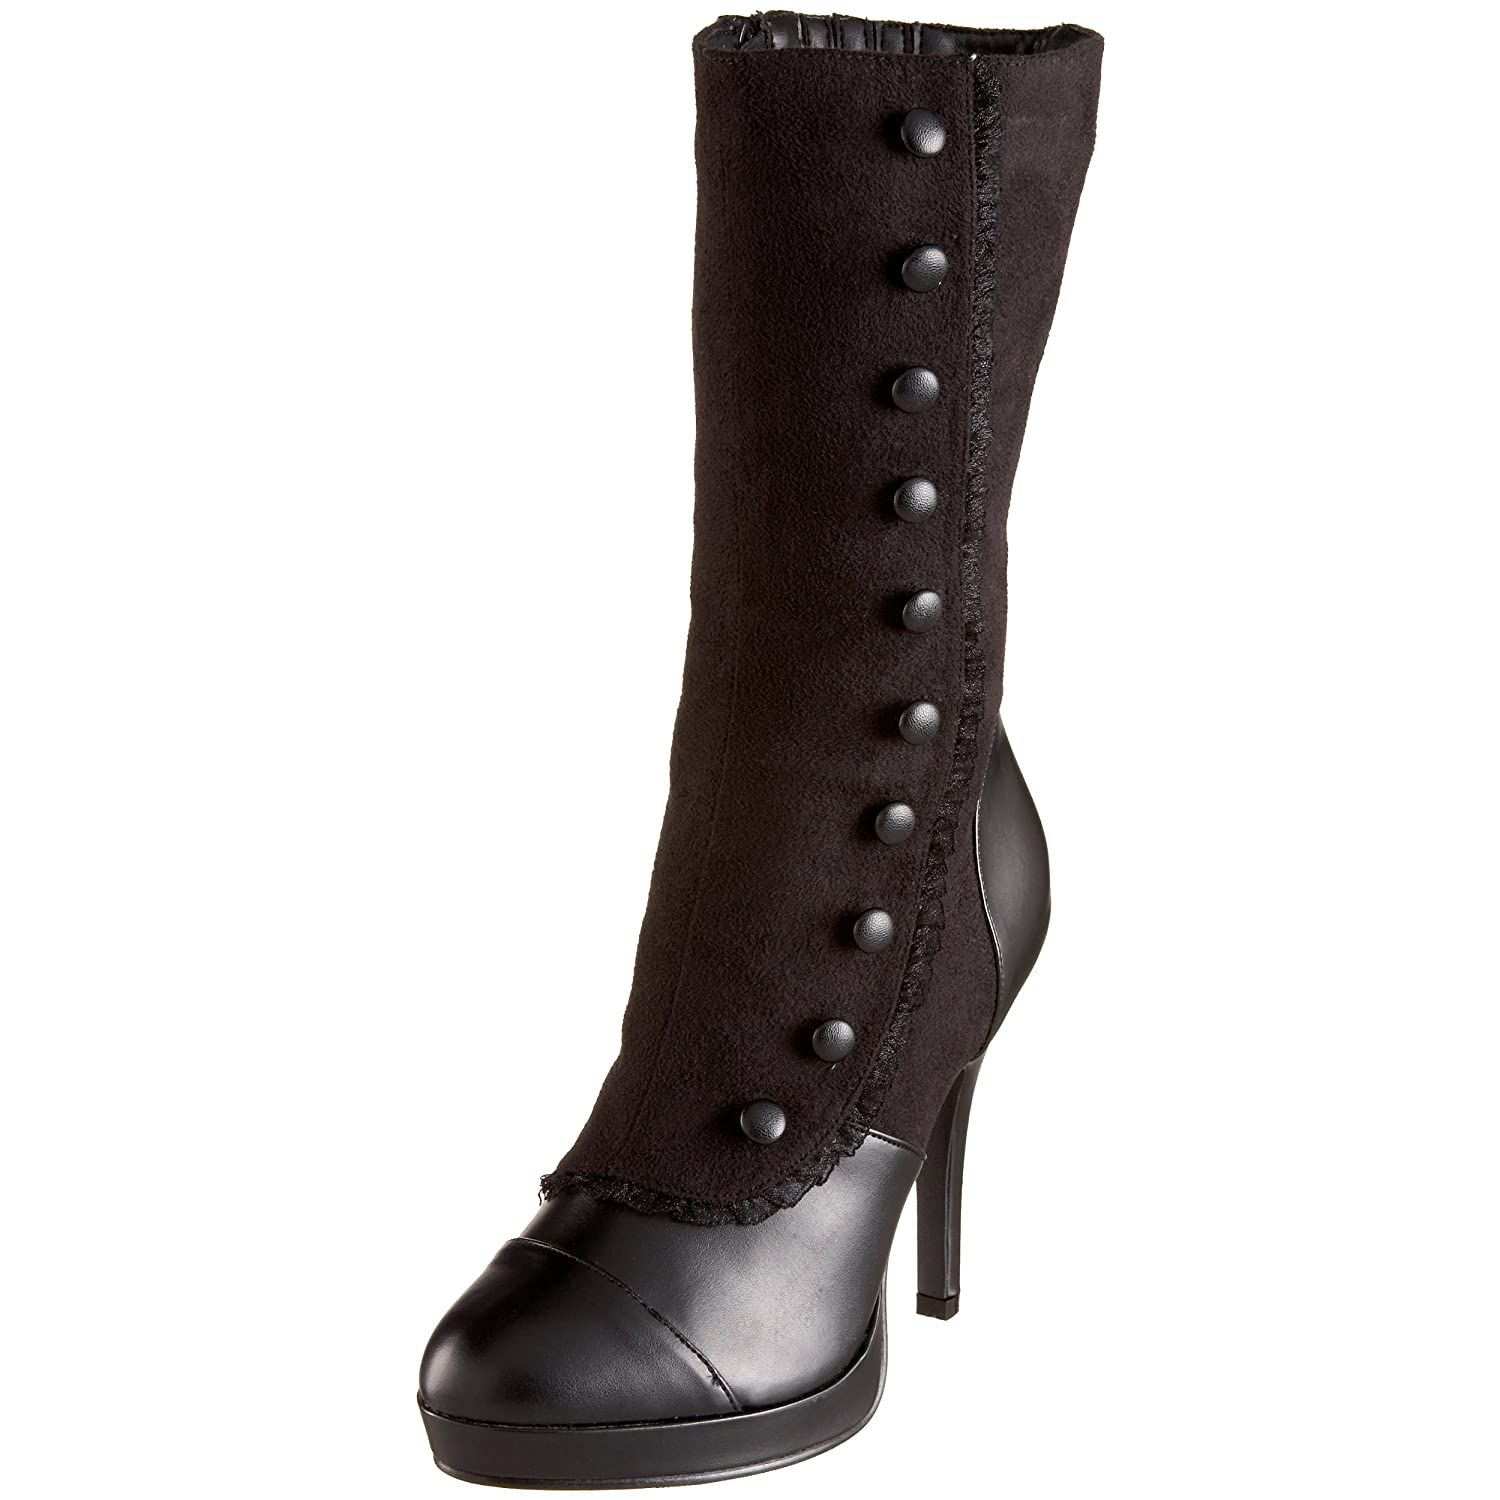 Ladies Victorian Boots & Shoes – Granny boots  Womens Splendor-130 Mid-Calf Boot $45.96 AT vintagedancer.com